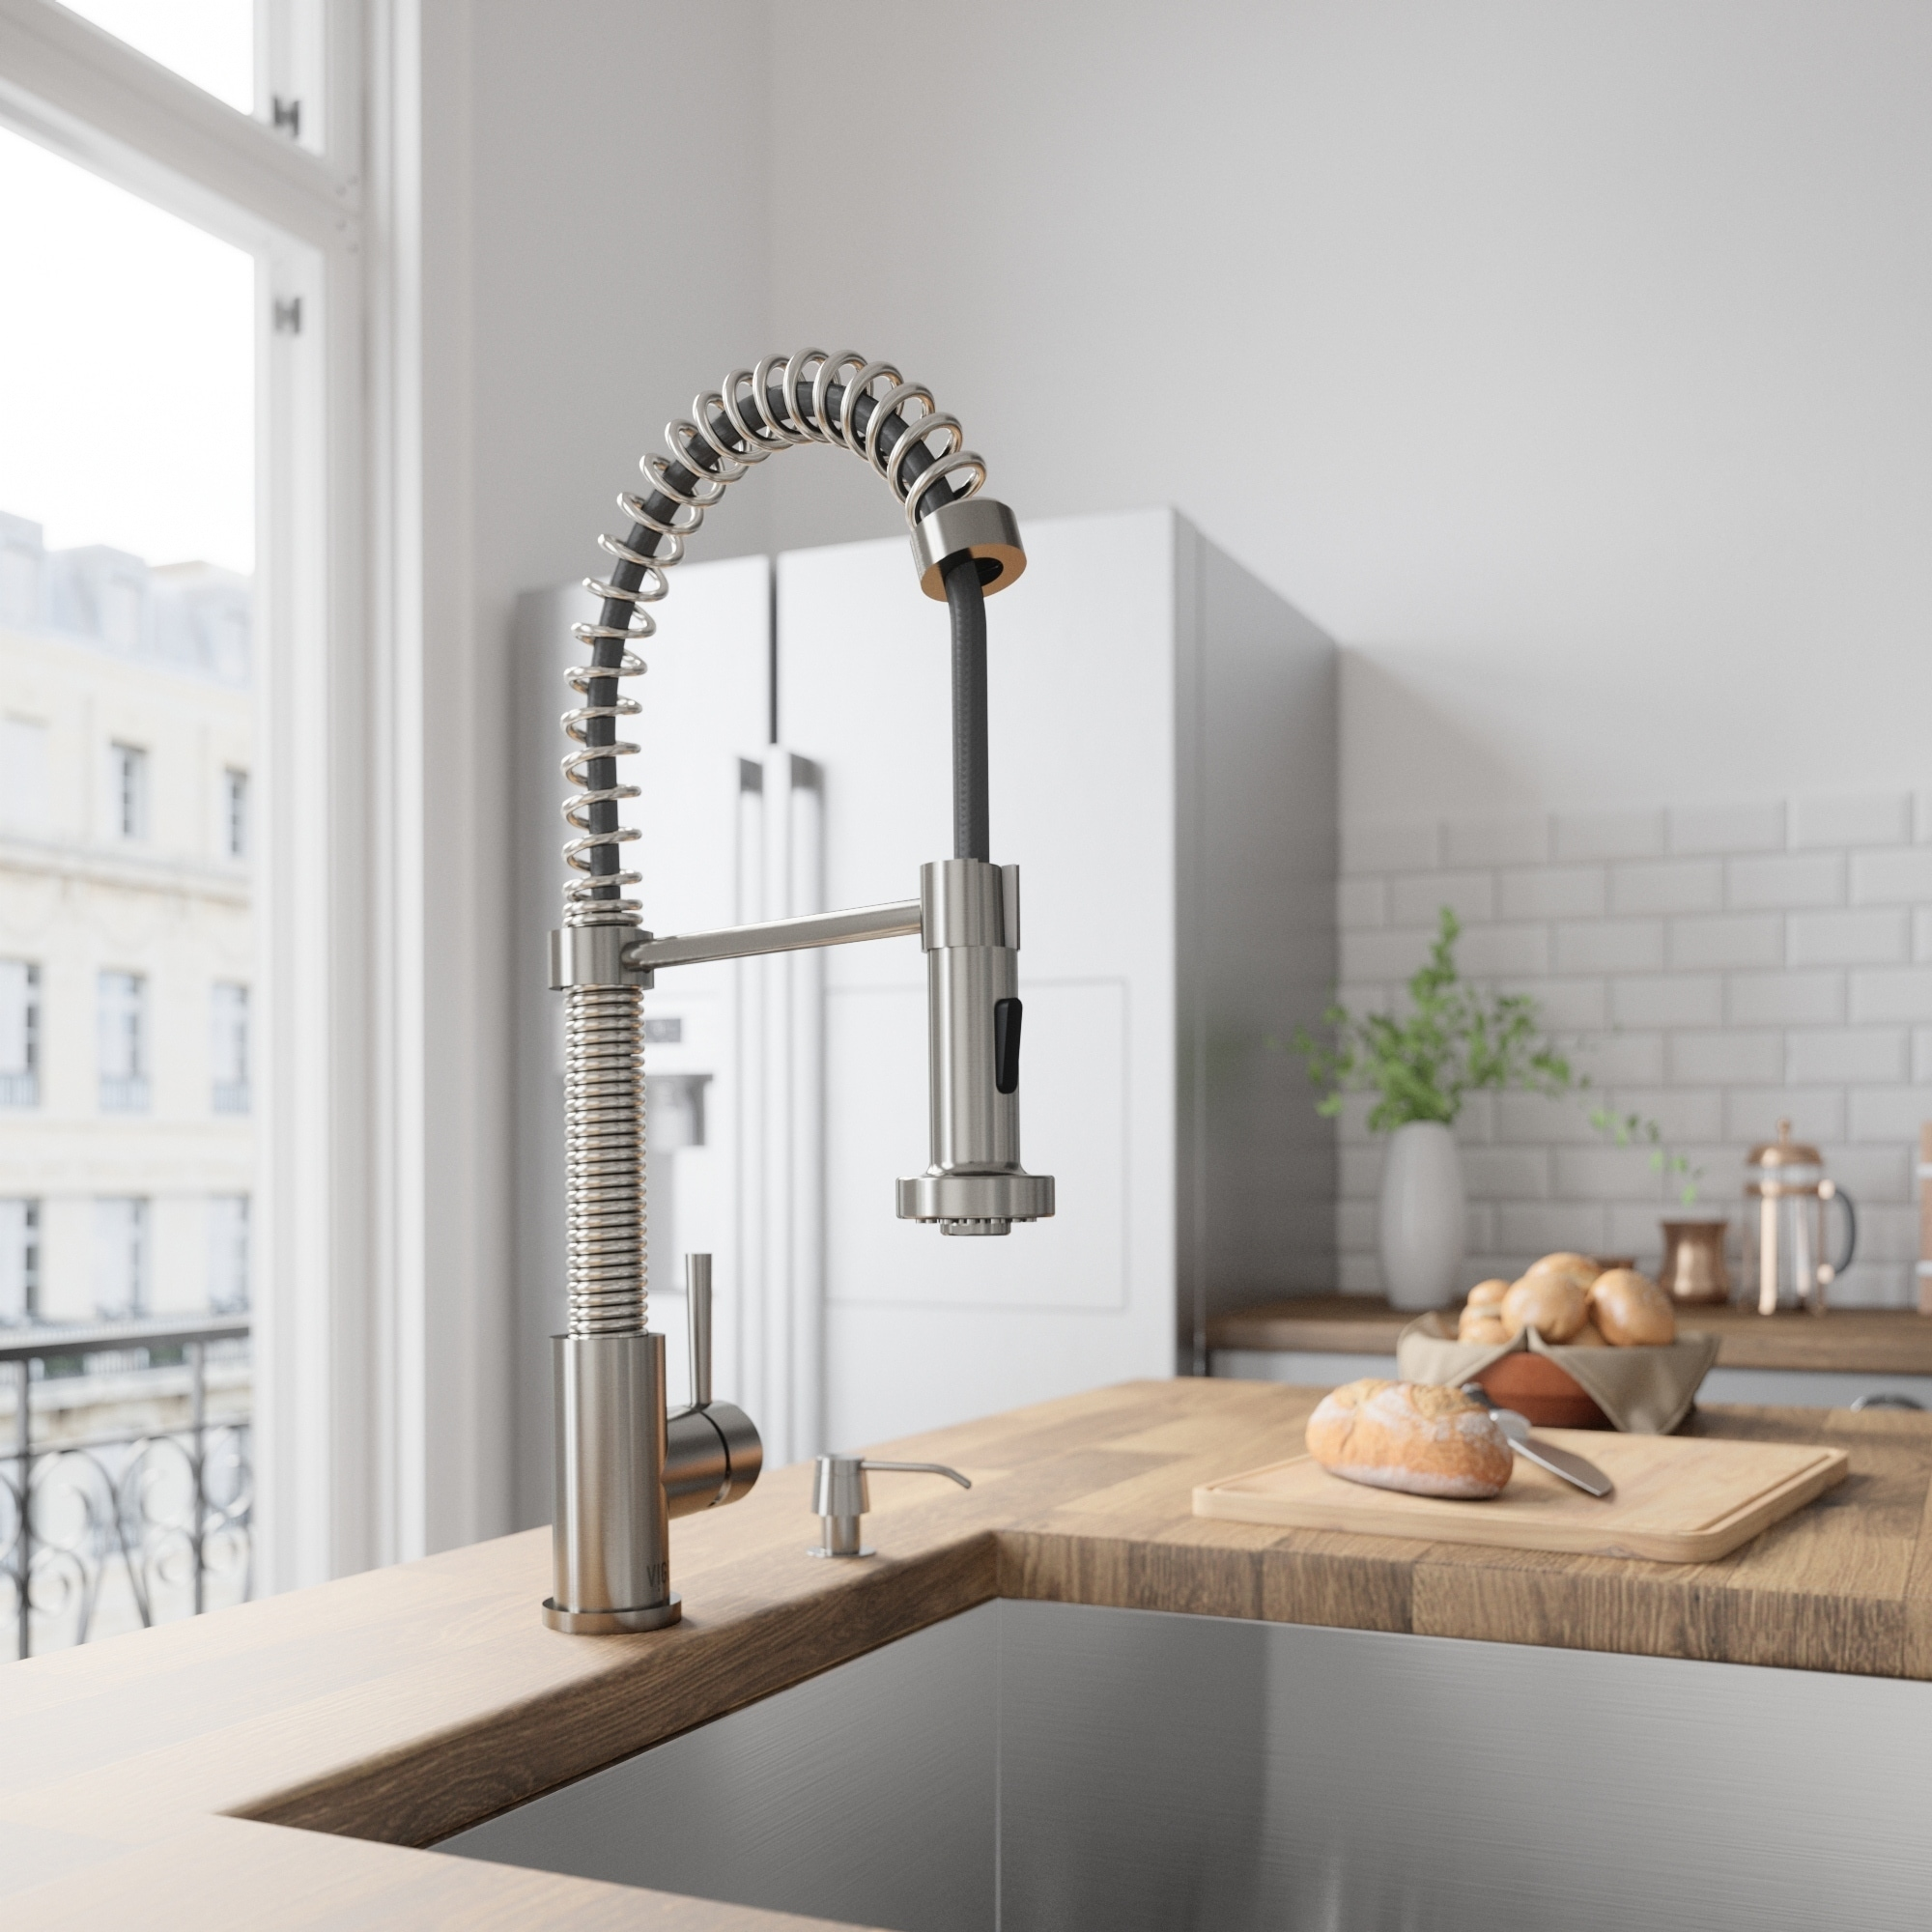 Vigo Edison Stainless Steel Spray Kitchen Faucet With Soap Dispenser Overstock 6006505